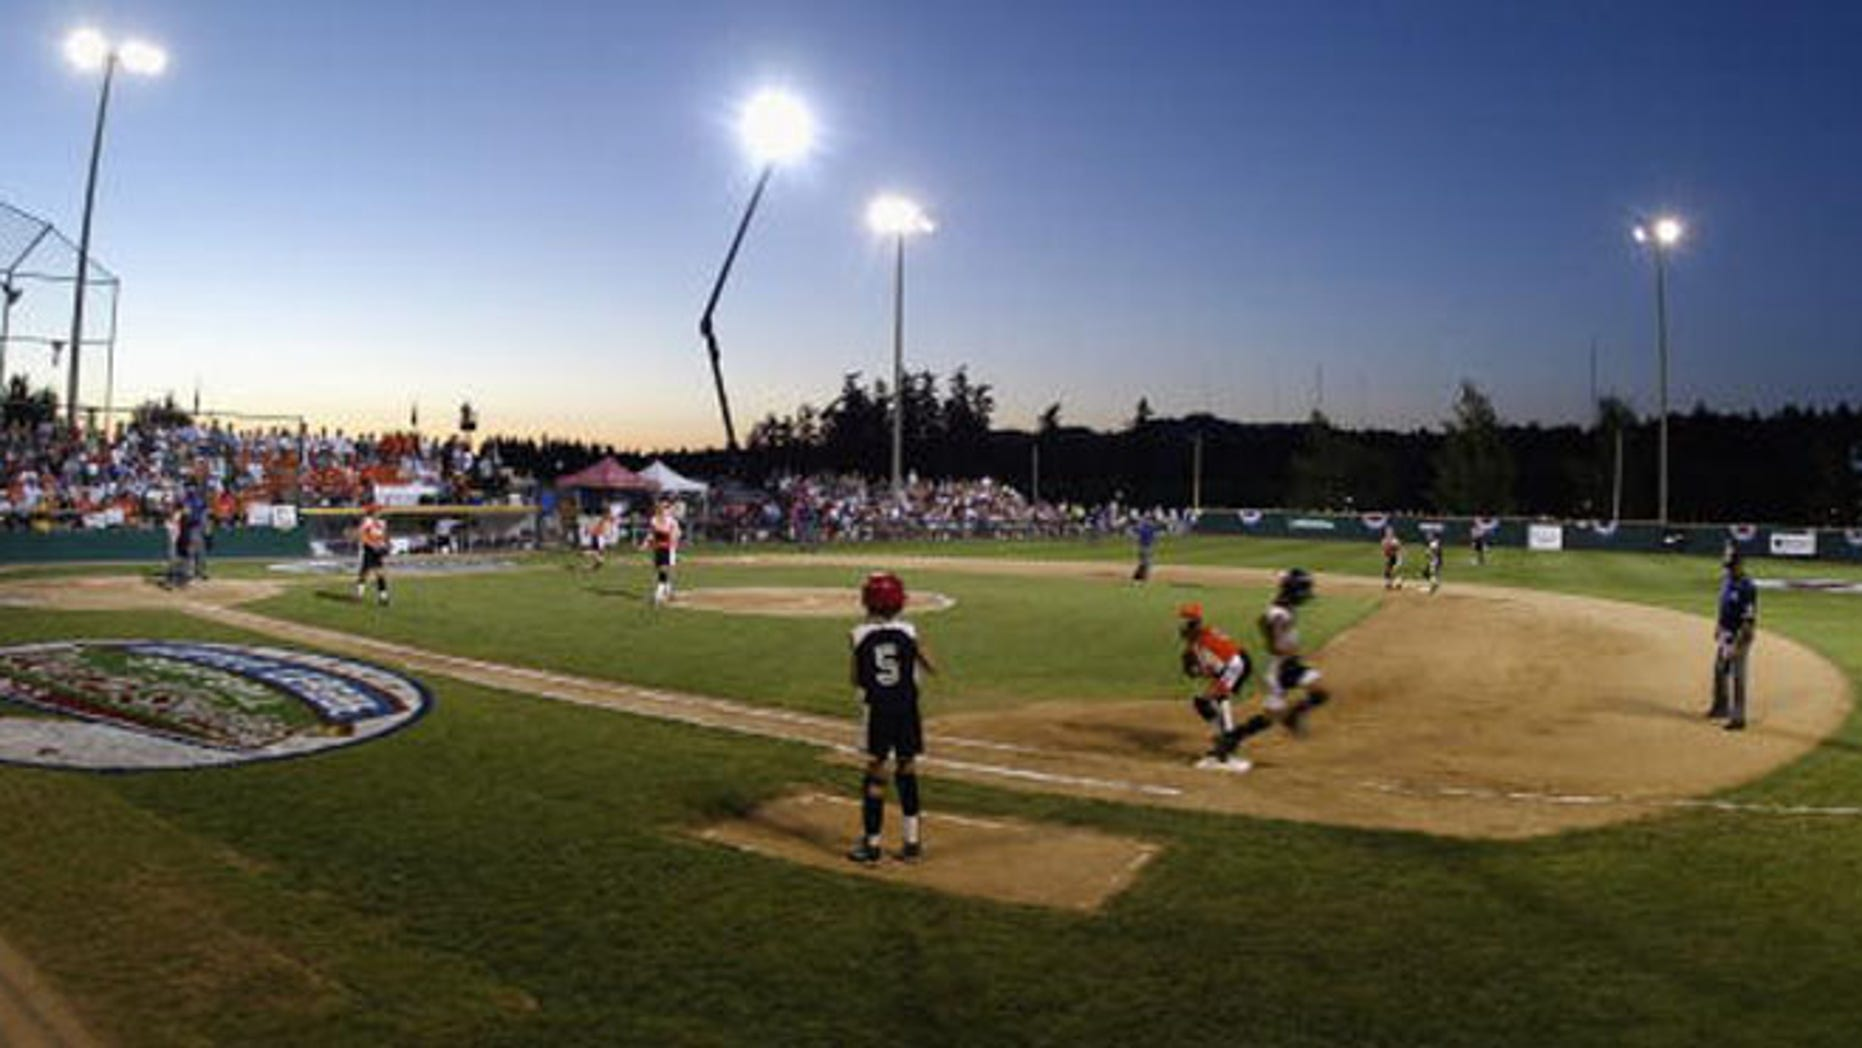 PORTLAND, OR - AUGUST 13:  A general view of the Little League Softball World Series Championship game between the Southwest (Waco, TX) and the South (Naples, FL) at Alpenrose Dairy Field on August 13, 2003 in Portland, Oregon.  Southwest defeated South 16-10.  (Photo by Jonathan Ferrey/Getty Images)